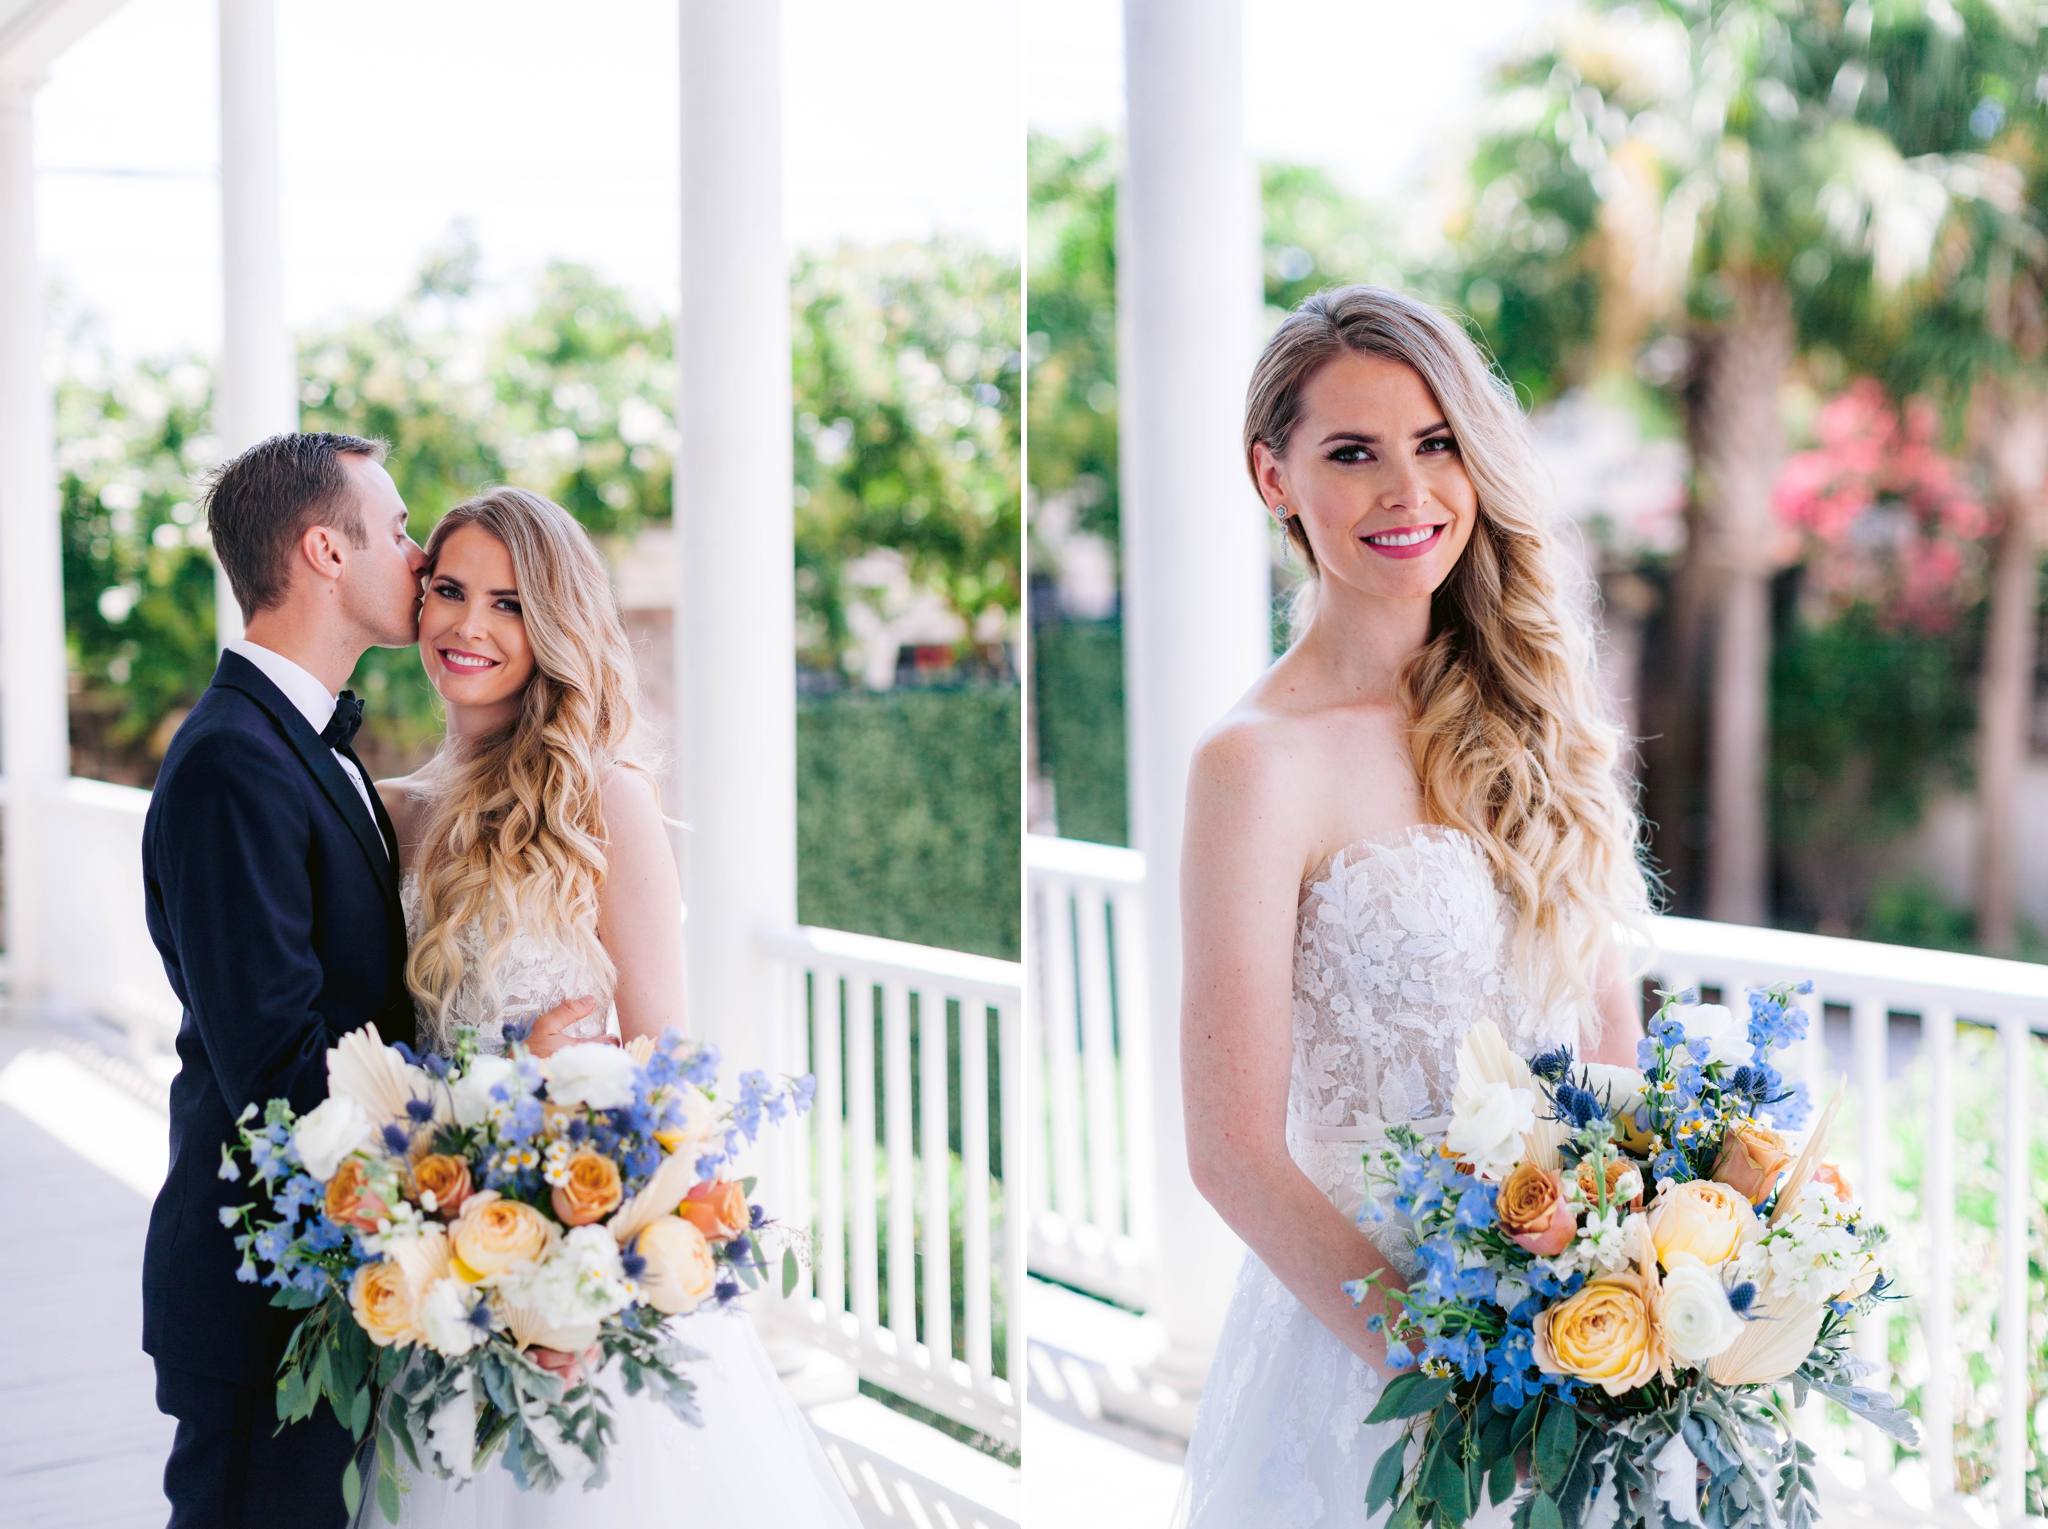 Bride and Groom Fine art natural light photography - black tucks and a ballgown wedding dress on a white porch with palm trees in the background - martha stewart weddings - style me pretty - Dusty Blue Wedding Inspiration - fine art photography - Honolulu, Oahu, Hawaii Wedding Photographer - johanna dye